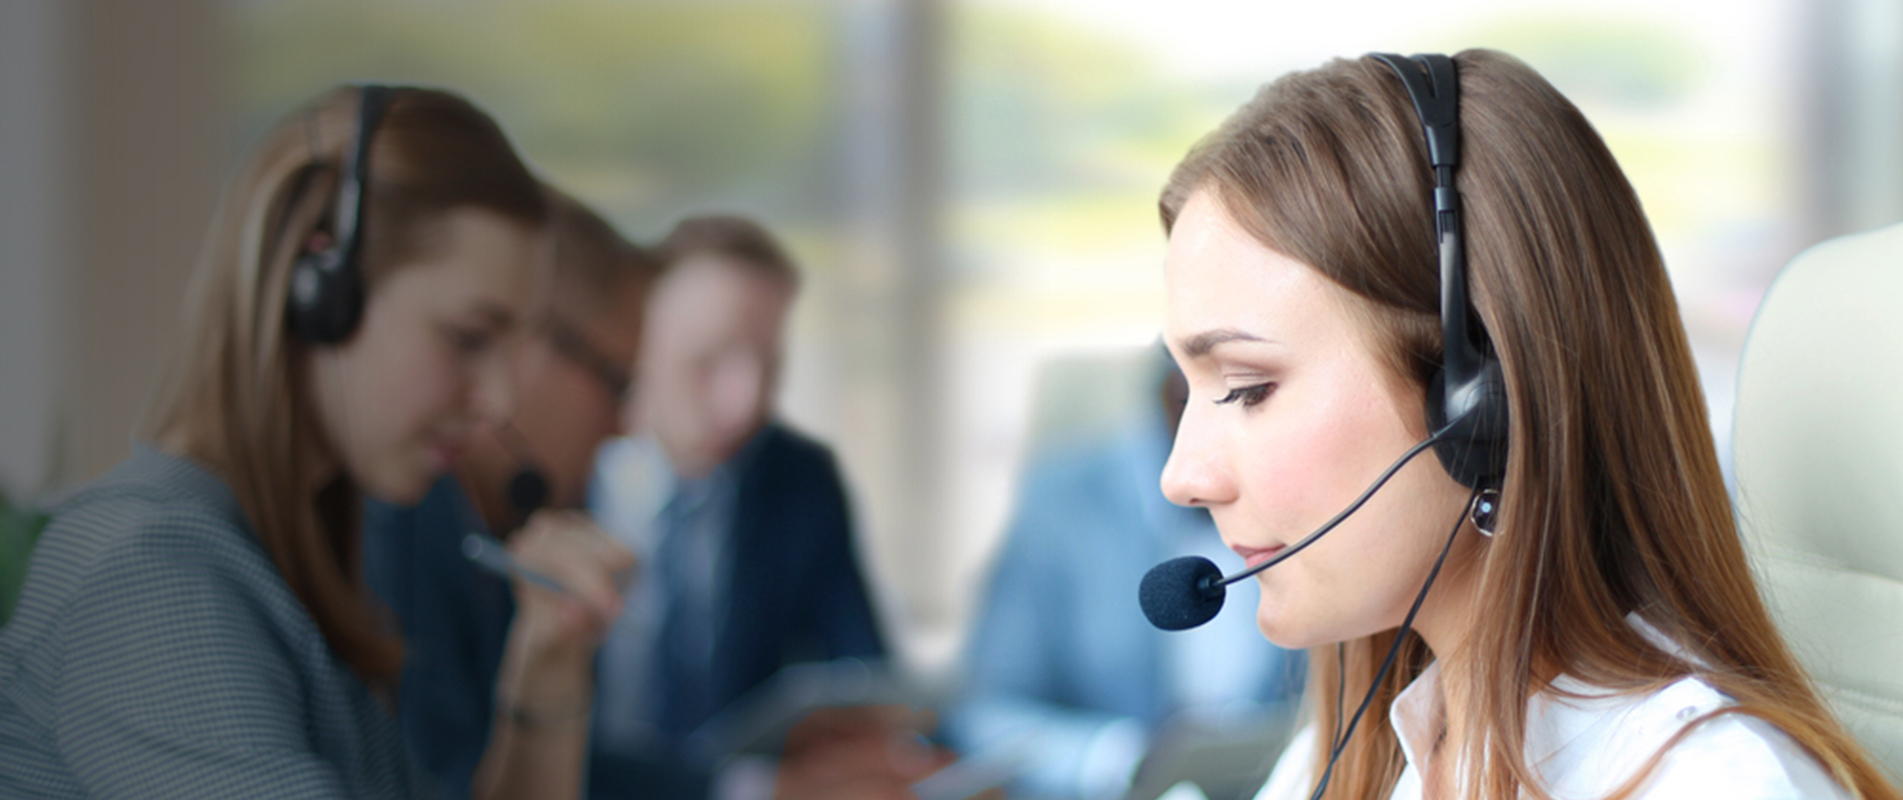 Lady at G4S 24 hour monitoring call centre